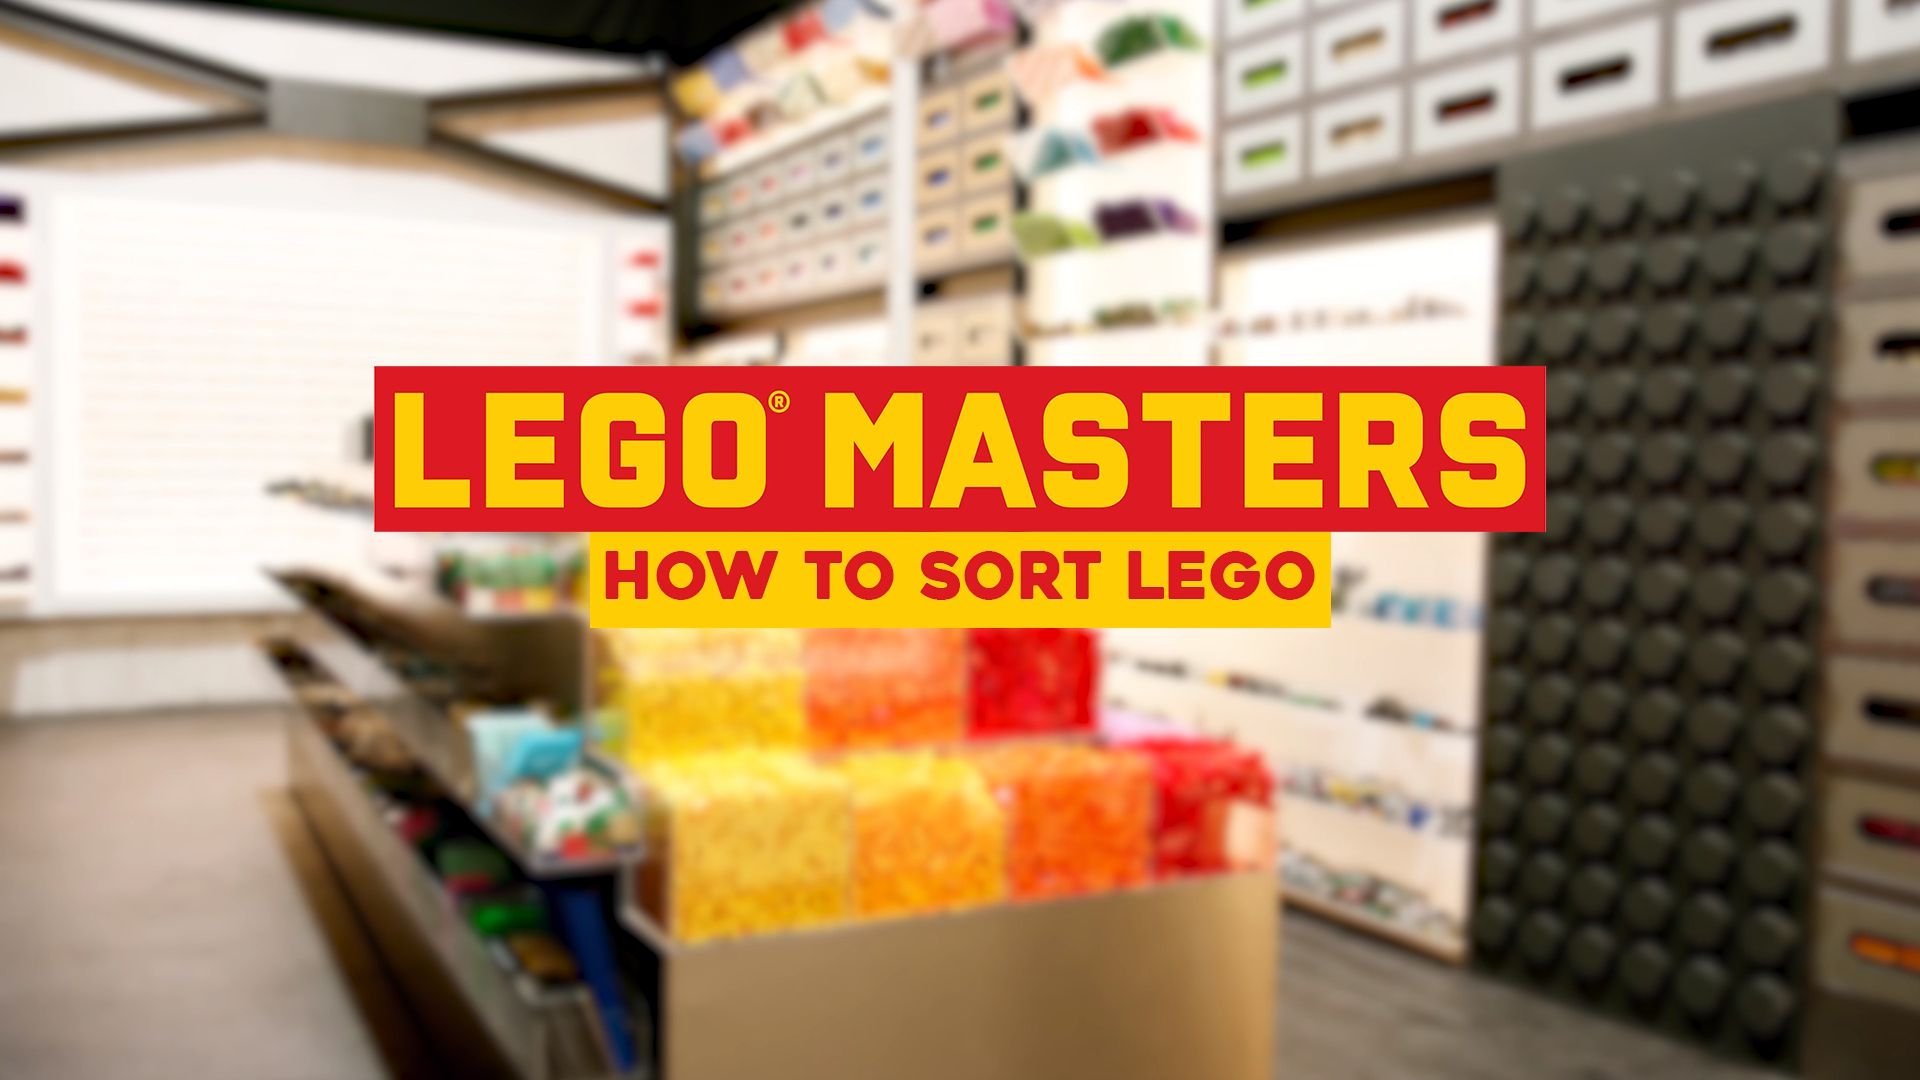 Tips, Tricks and Hacks: How to sort LEGO: Lego Masters Season 1, Short Video